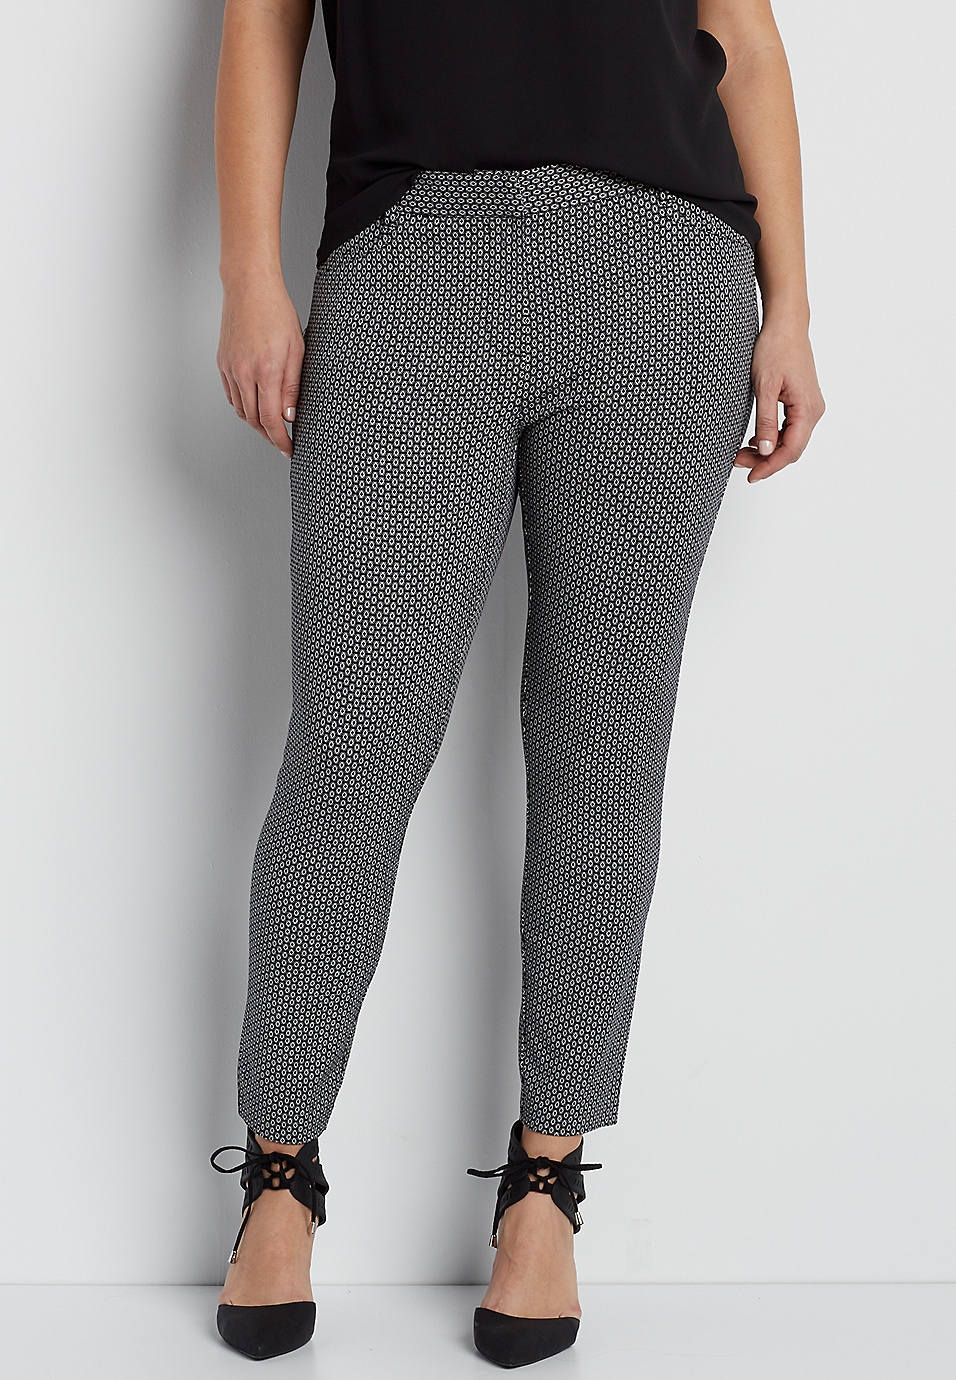 c9858735b4e the smart plus size diamond patterned round the clock skinny ankle pant